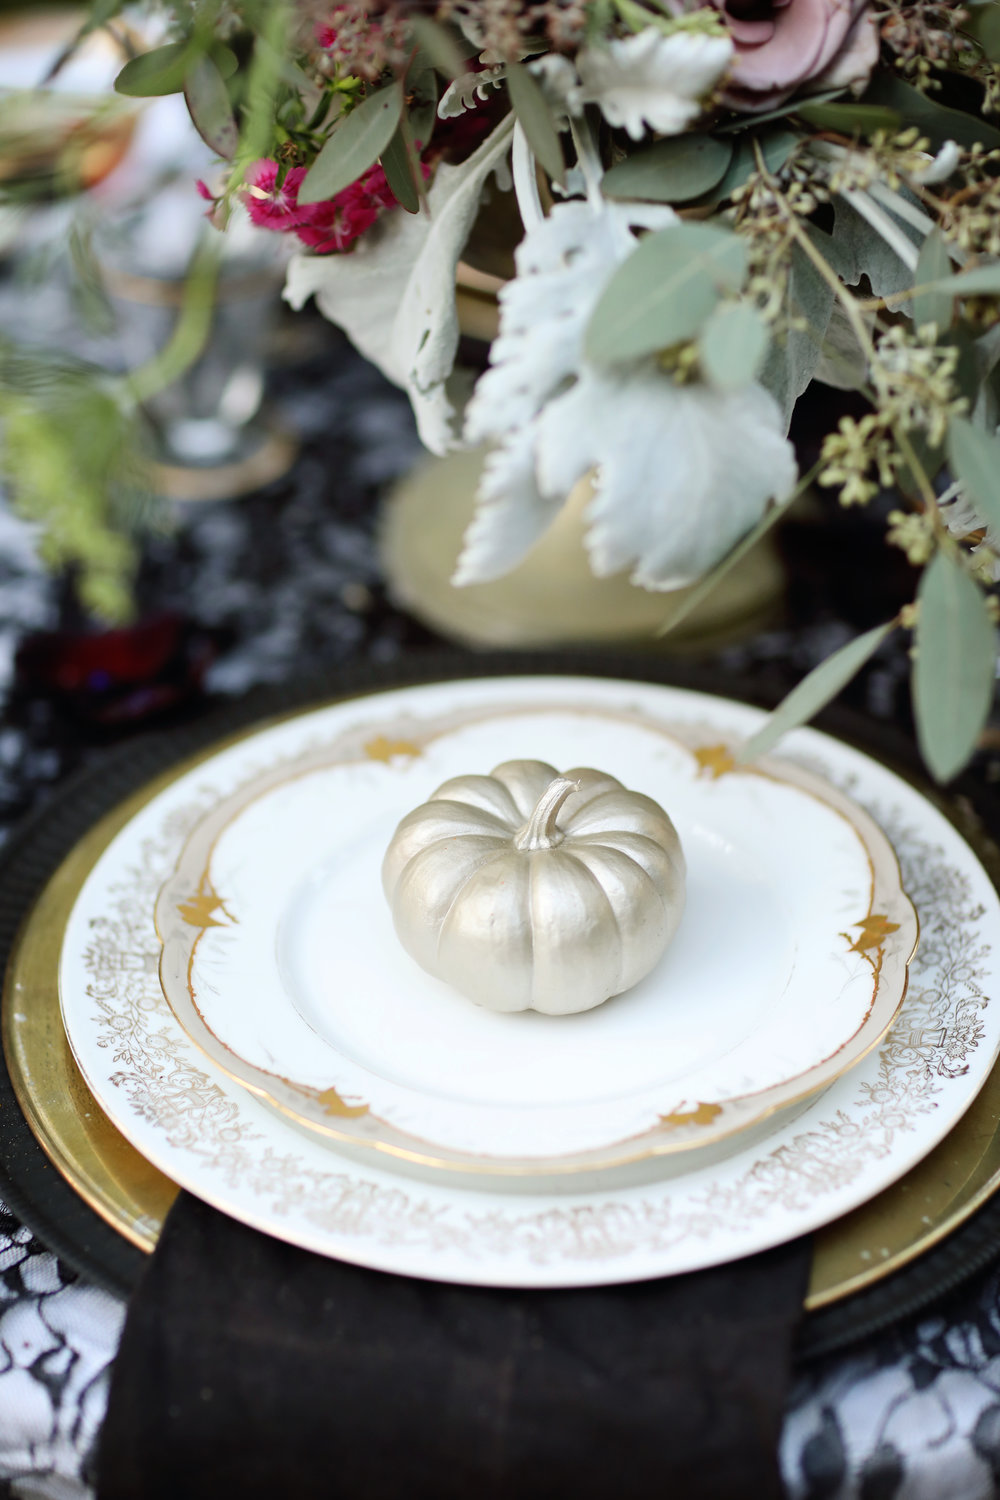 Gold china, gold chargers, black napkins, gold pumpkins, wedding table.